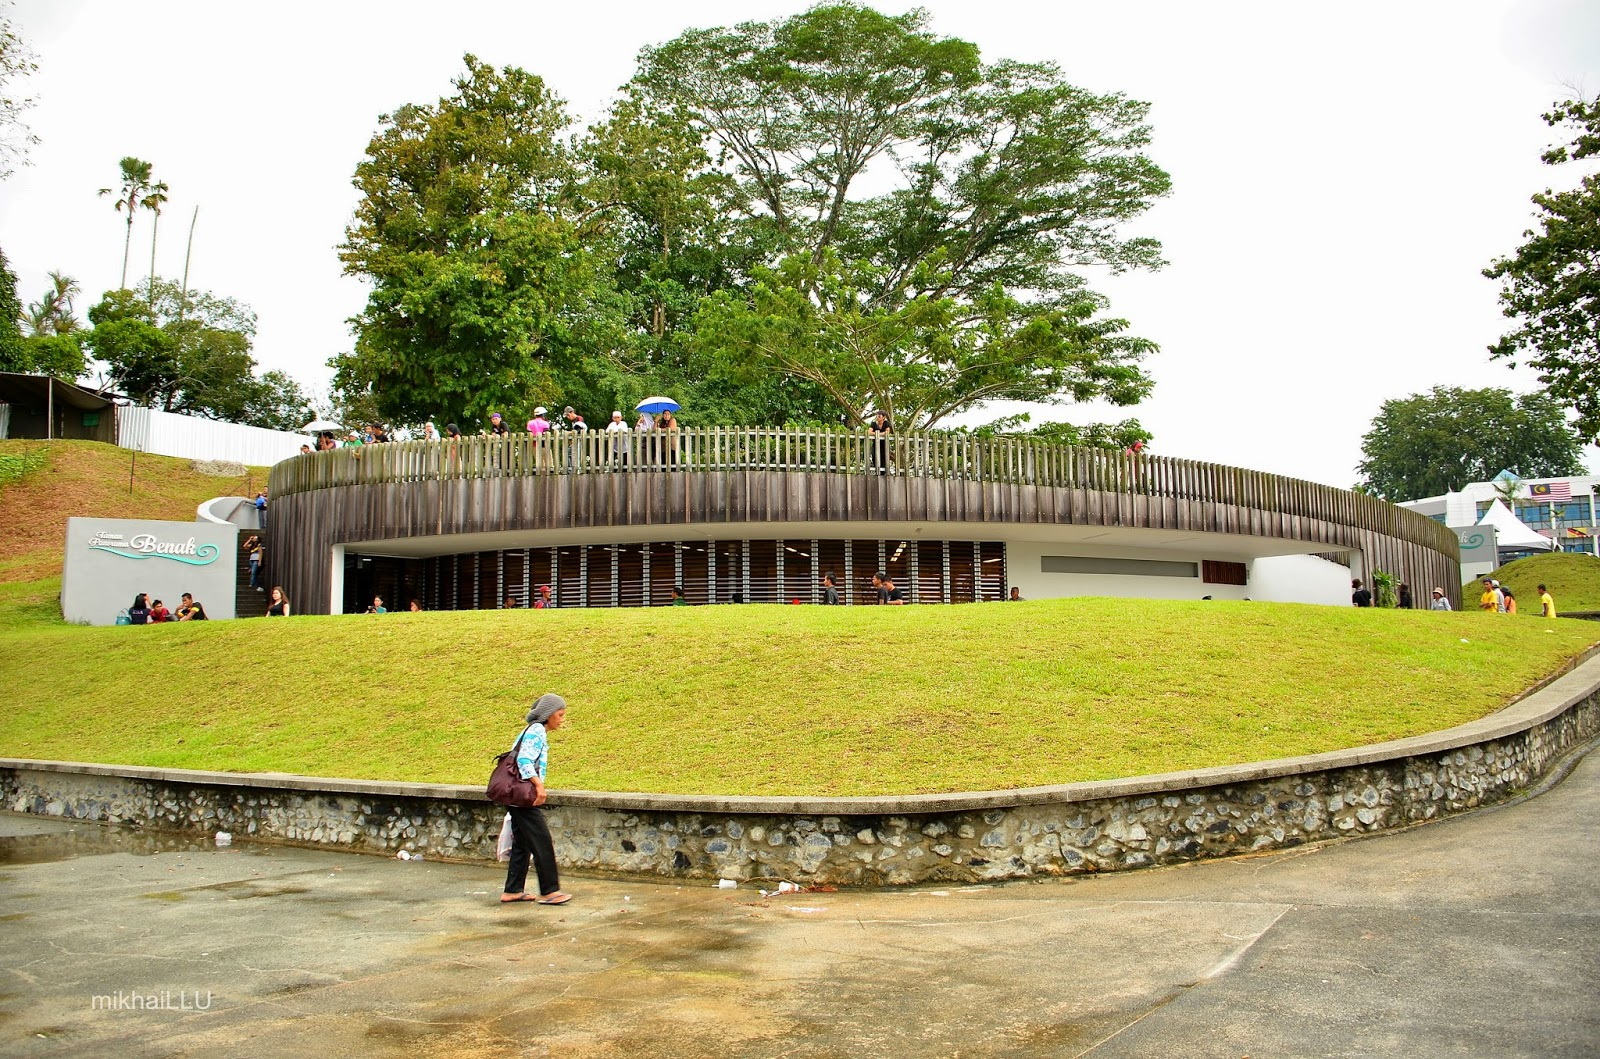 The front view of the Tidal Bore Observatory aka Taman Panorama Benak | mikhaiLLU